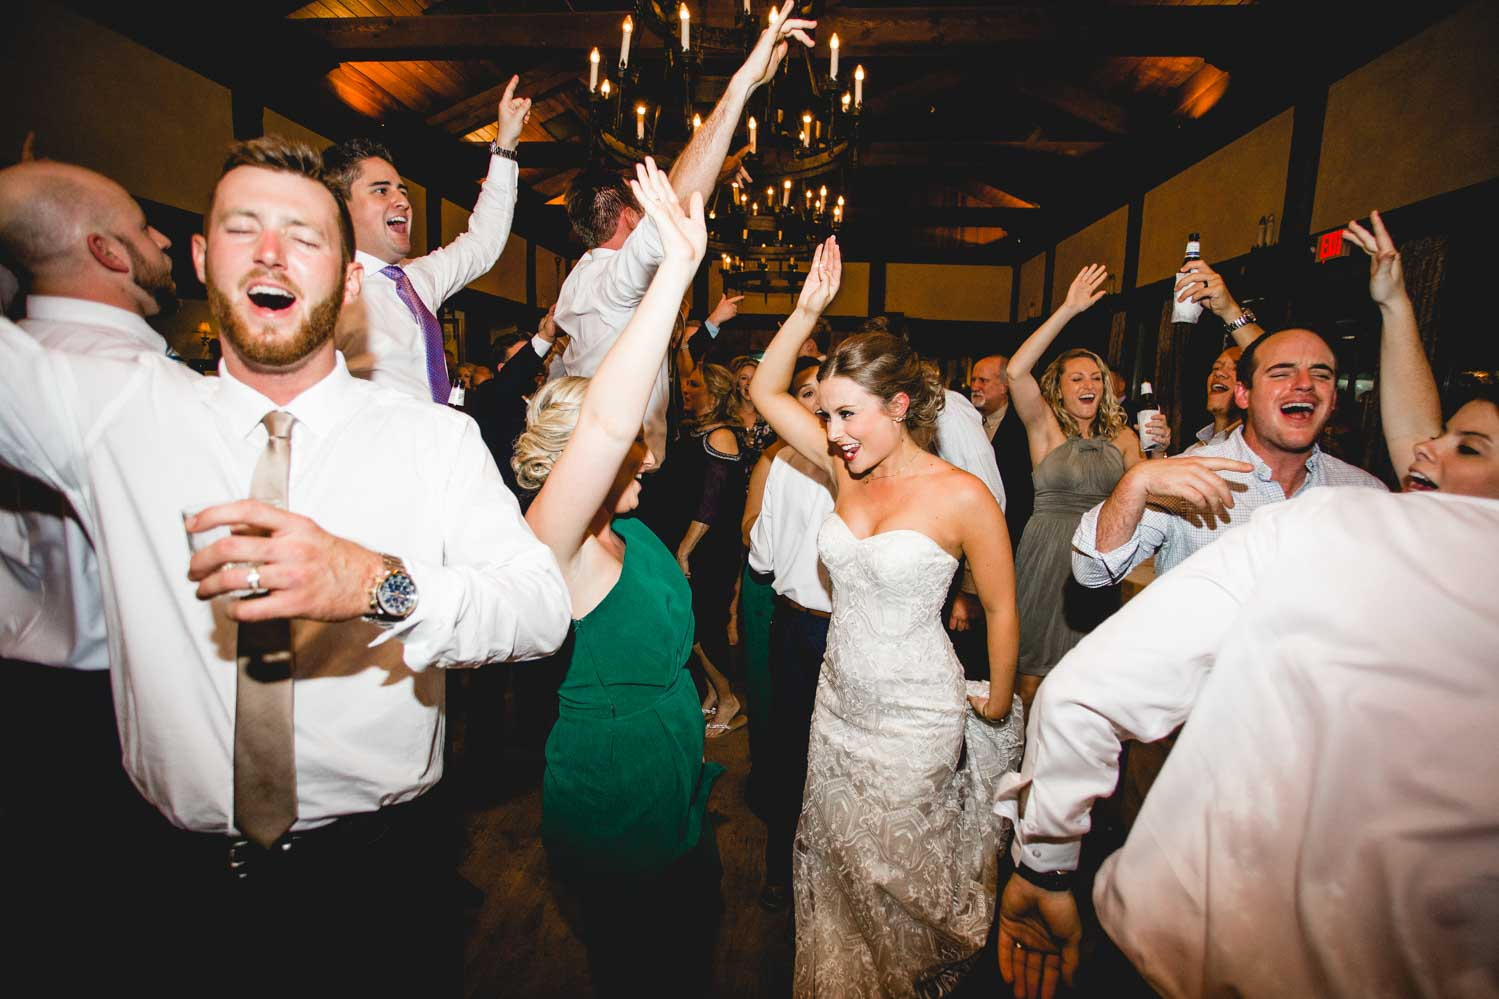 Wedding party having an absolutle blast dancing on the dance floor at Macgregor Downs Country Club wedding venue.